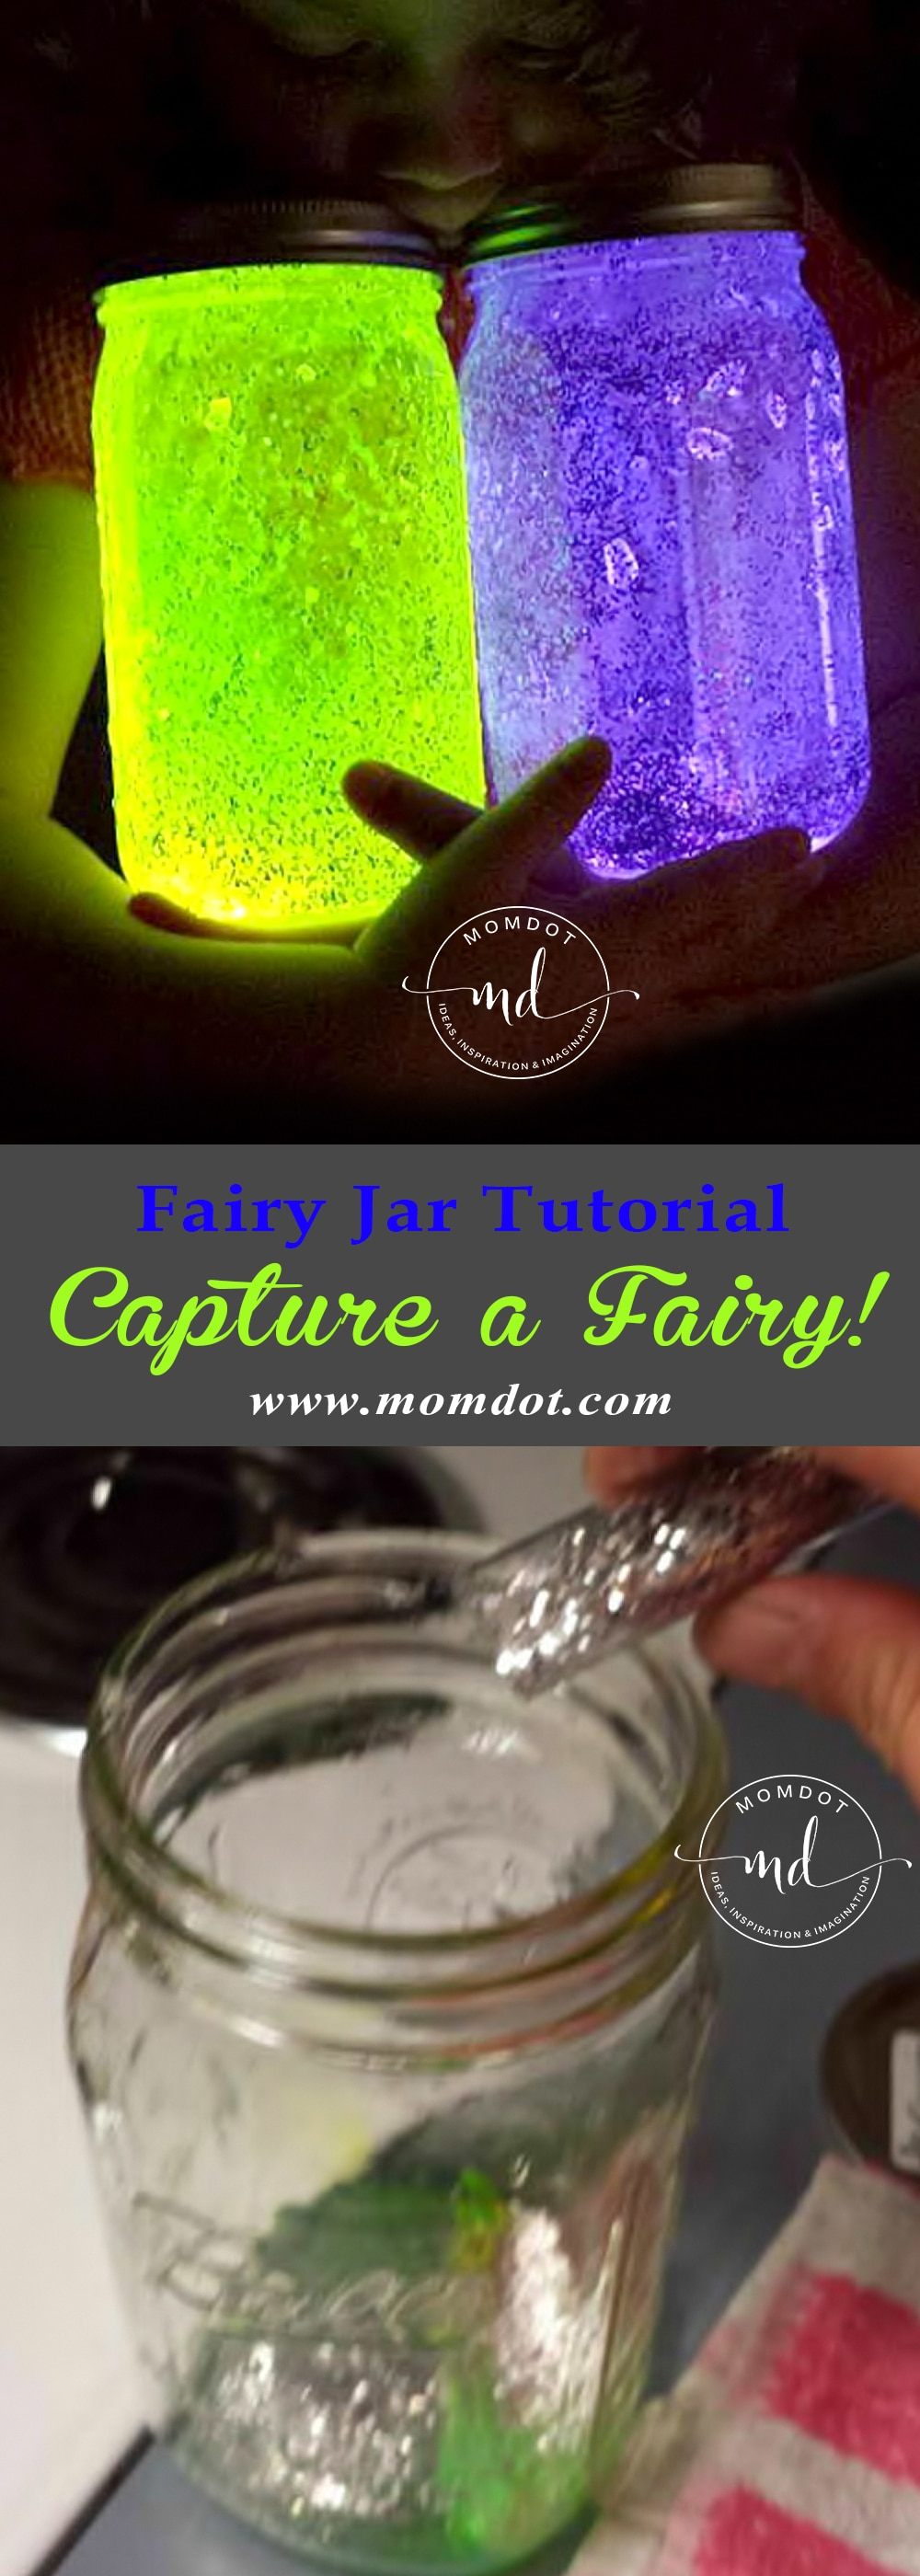 Fairy Jar Tutorial: DIY and Capture a fairy!